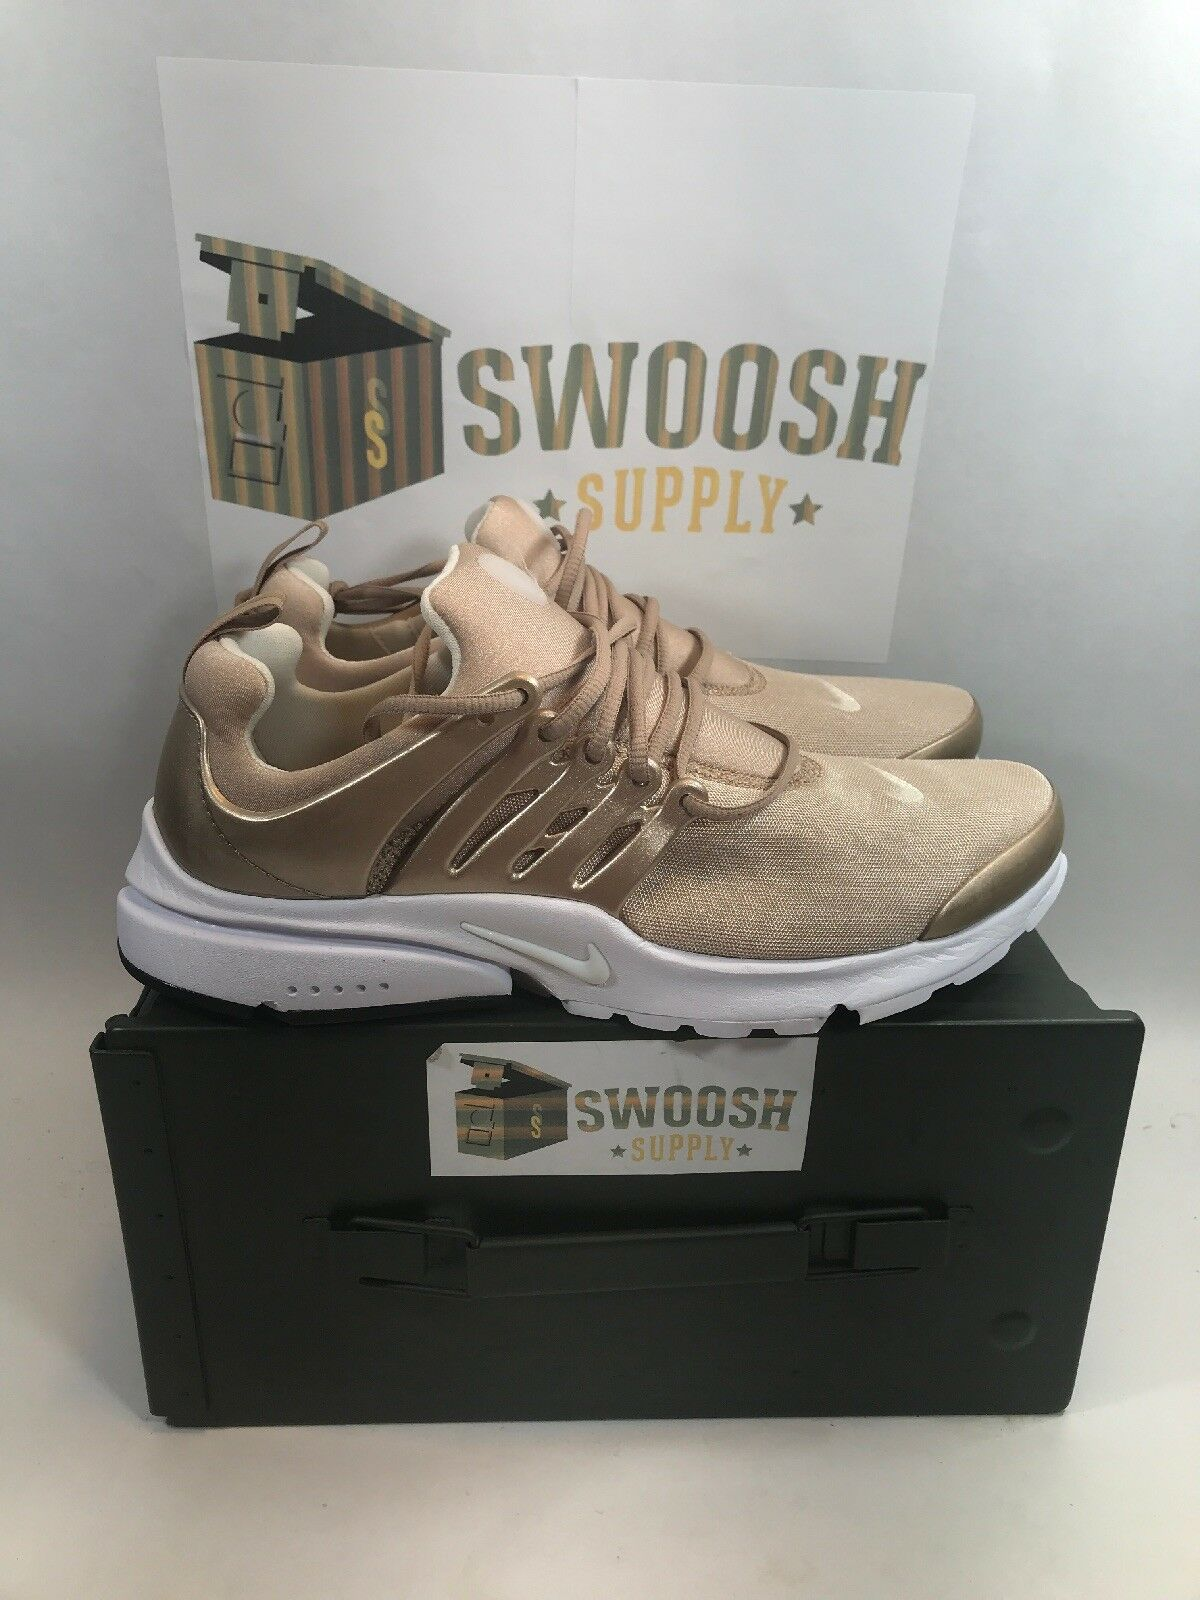 NIKE AIR PRESTO PREMIUM blueR METALLIC gold SIZE 8 New 848141 900